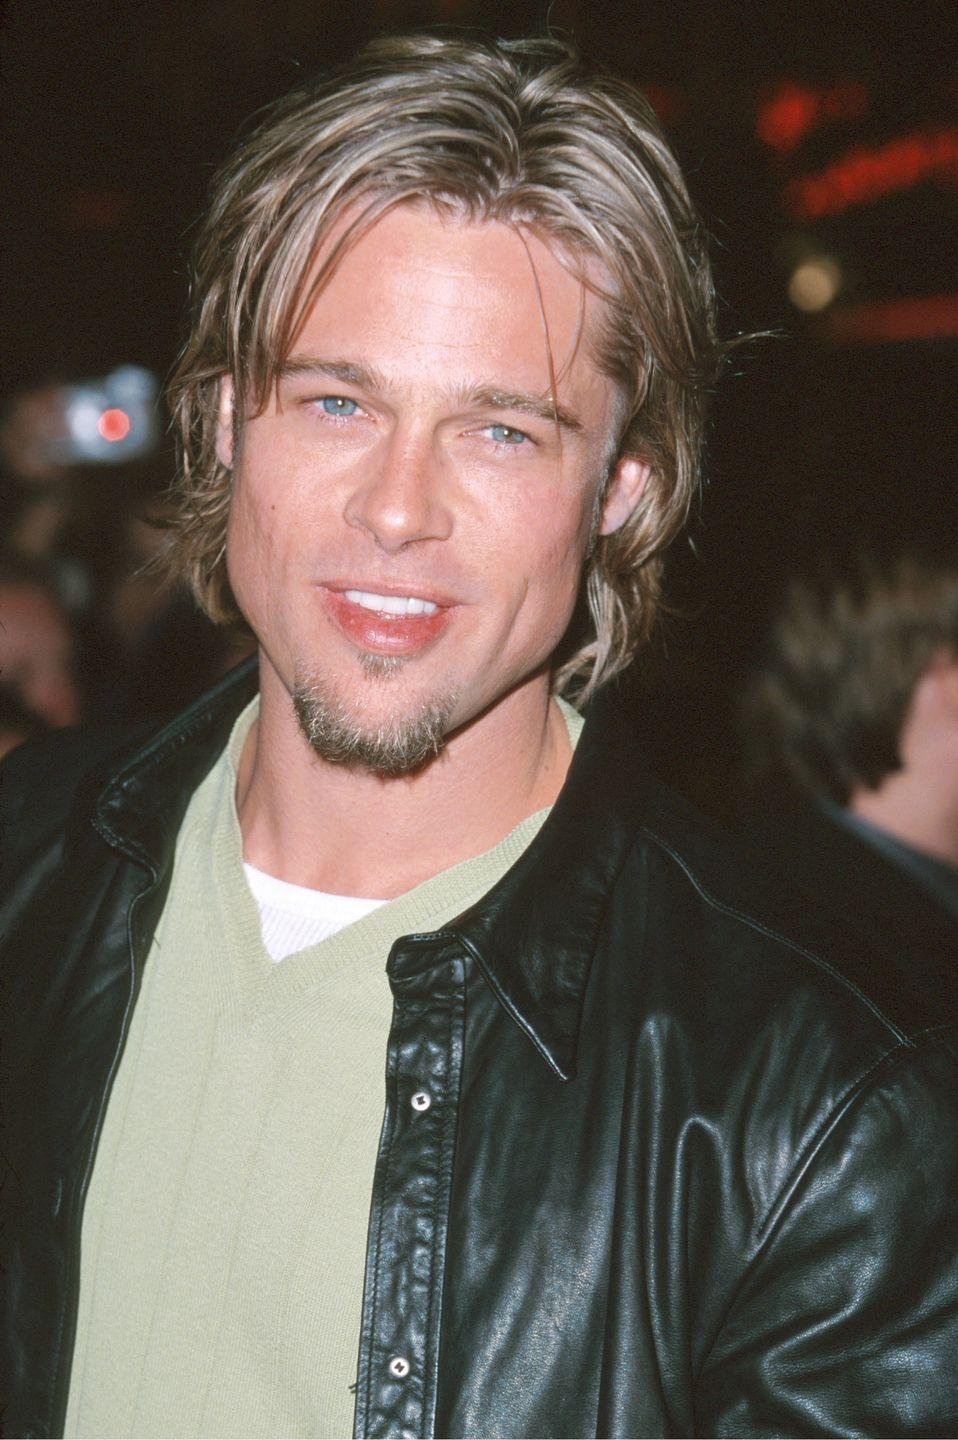 <p>Ah, yes, the <em>Snatch</em> era. A bit oilier than I'd like, Pitt is somewhere between Ellen Degeneres coming out on national television and Kurt Cobain. The length suits him surprisingly well... it's just that strange wet look that never seems to land correctly.</p>